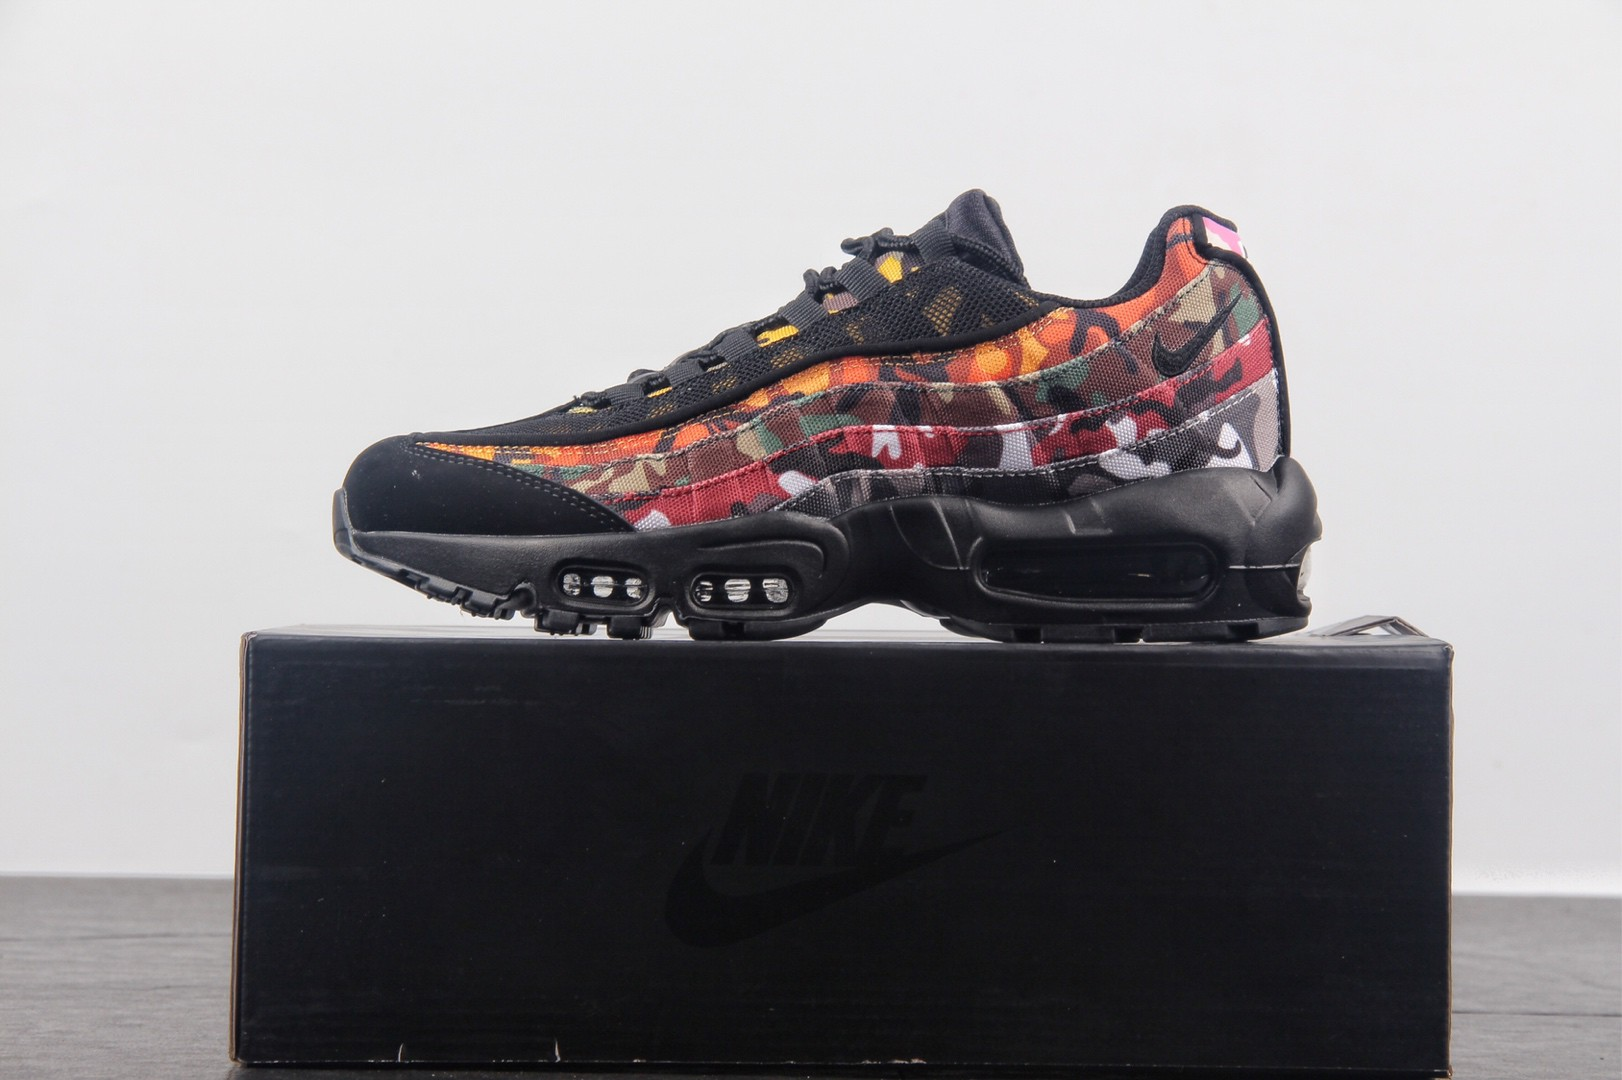 Nike Air Max 95 Material,Nike Air Max 95 Sale Outlet,max 95 Original Import Material Factory Outlet Shoppe Order Deadstock Pro